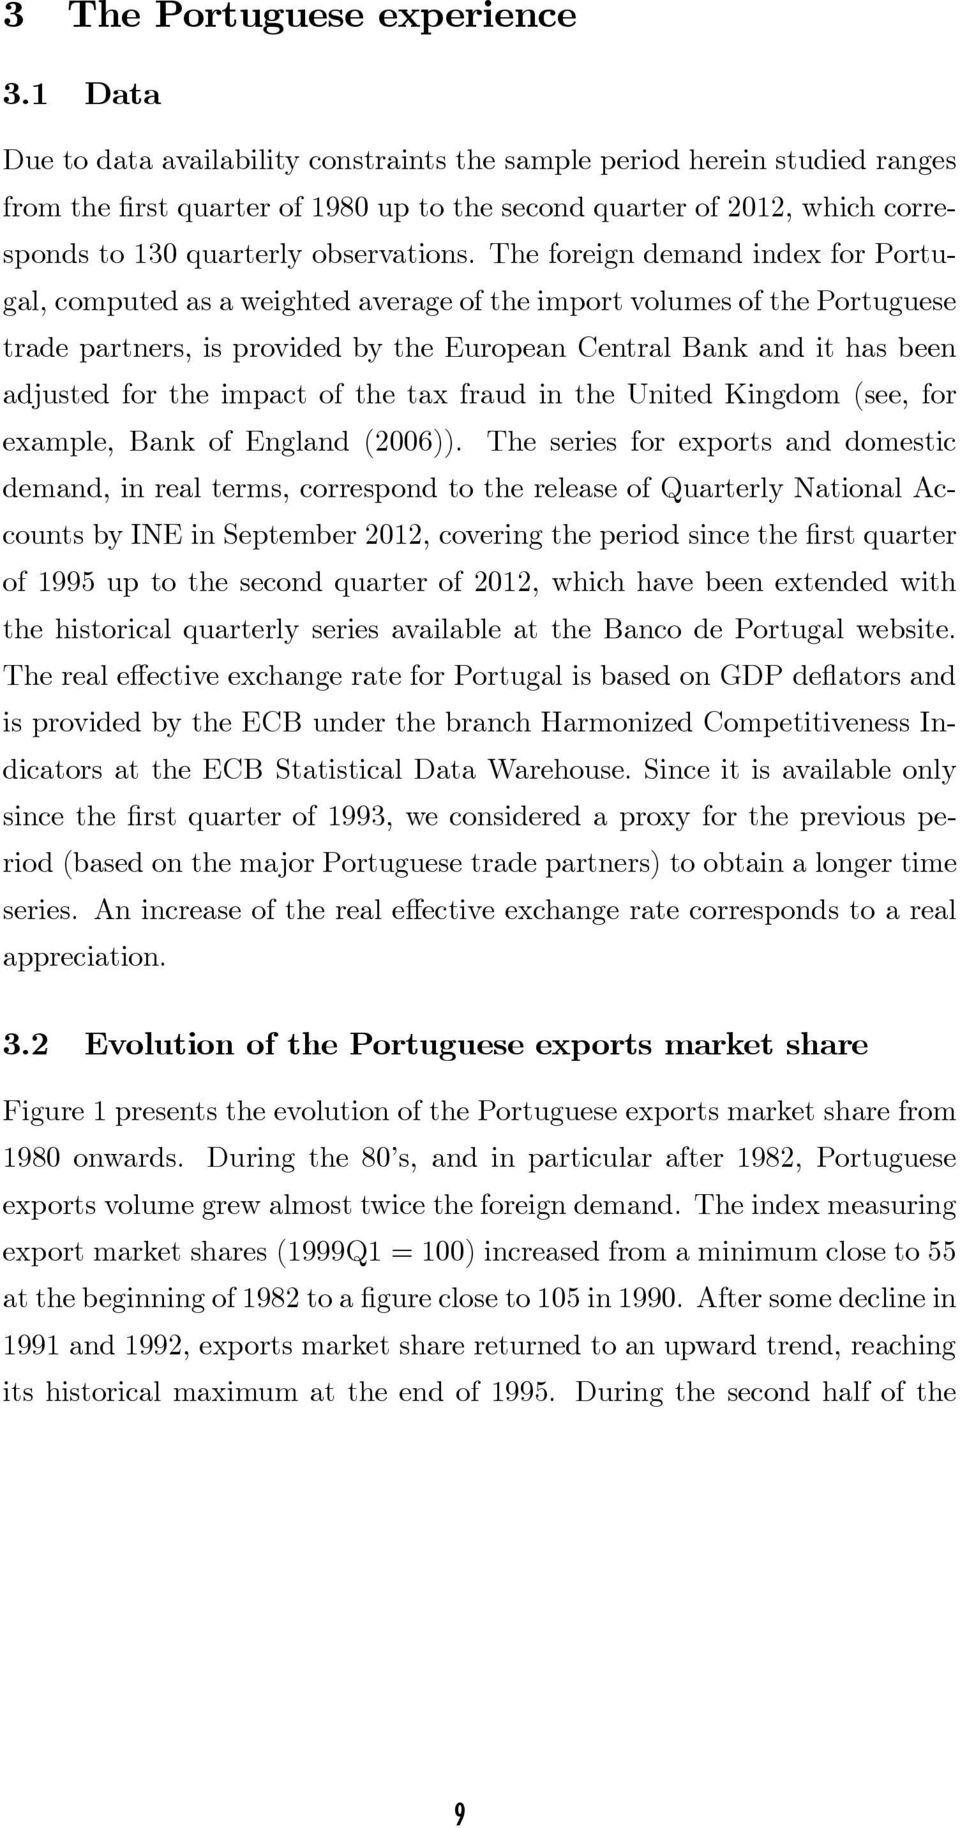 The foreign demand index for Portugal, computed as a weighted average of the import volumes of the Portuguese trade partners, is provided by the European Central Bank and it has been adjusted for the